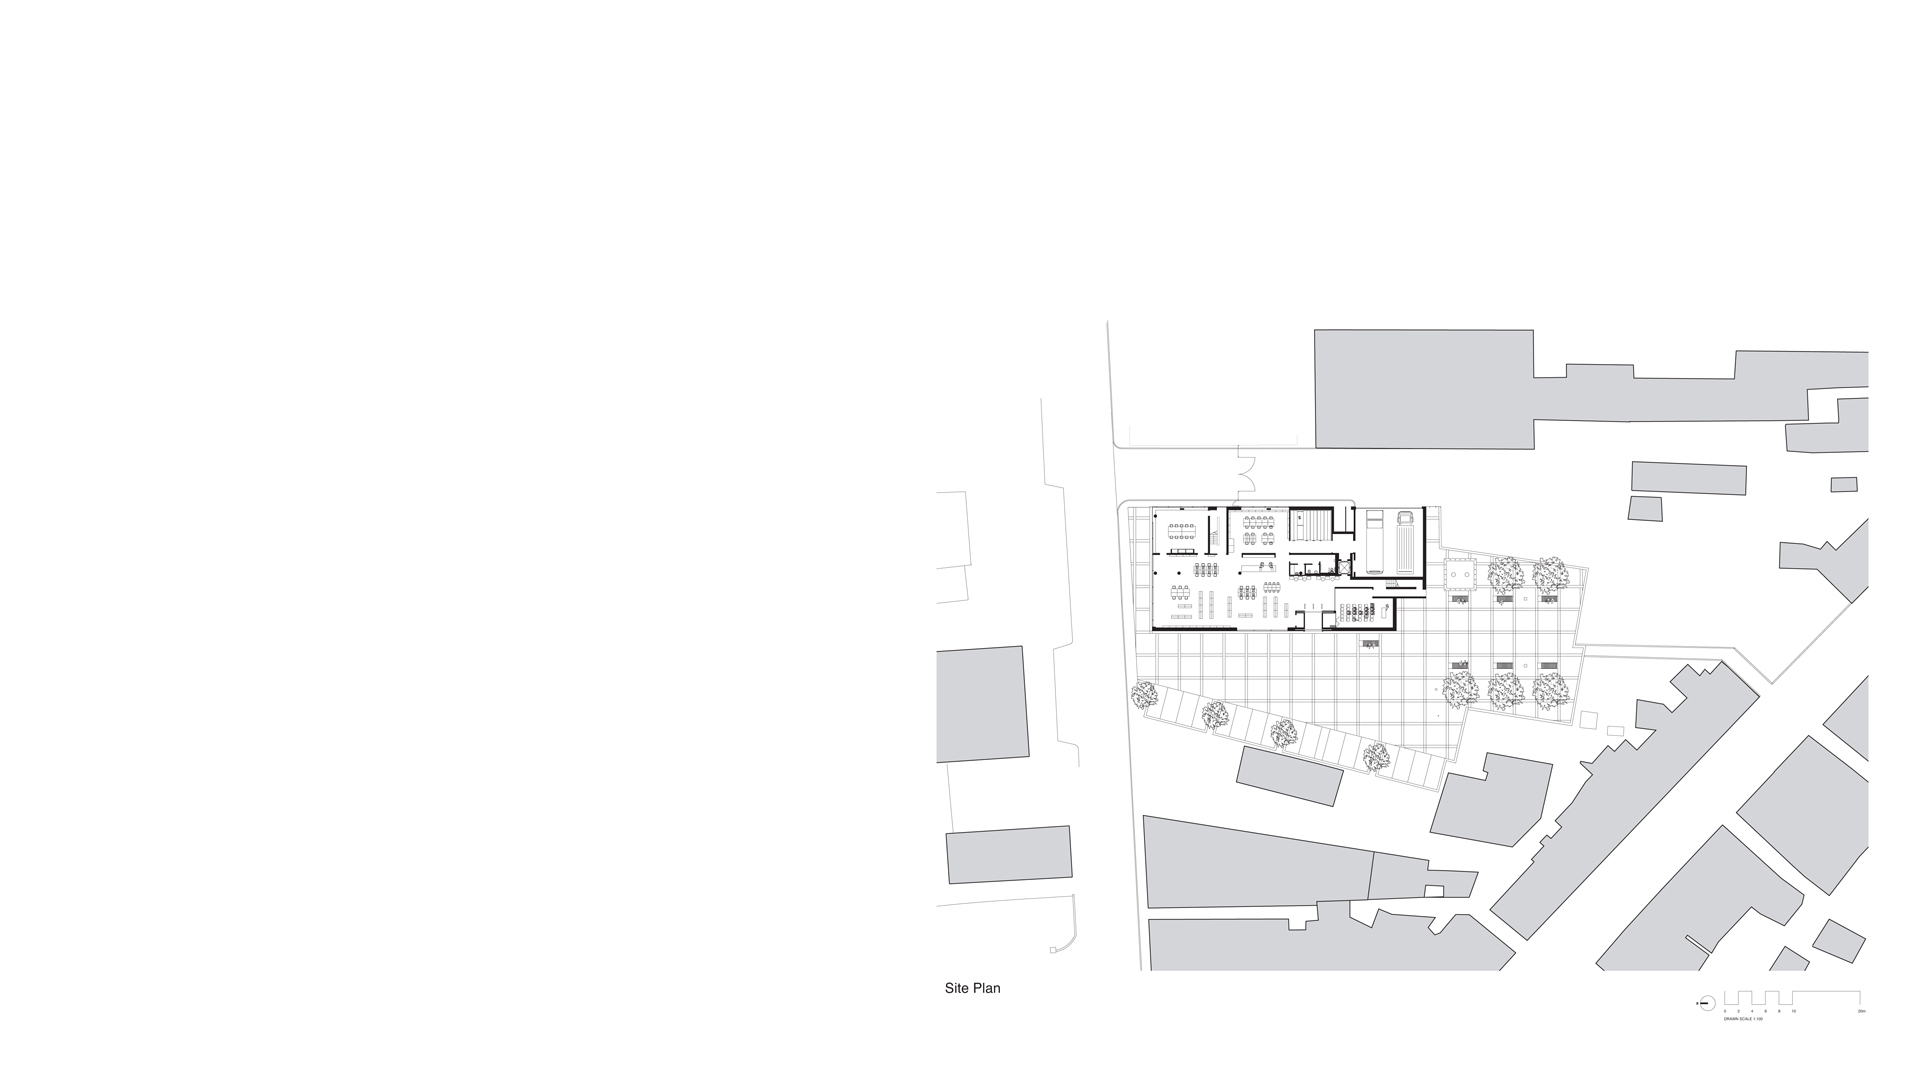 Site plan Clones Library and County Library HQ, Clones, Ireland